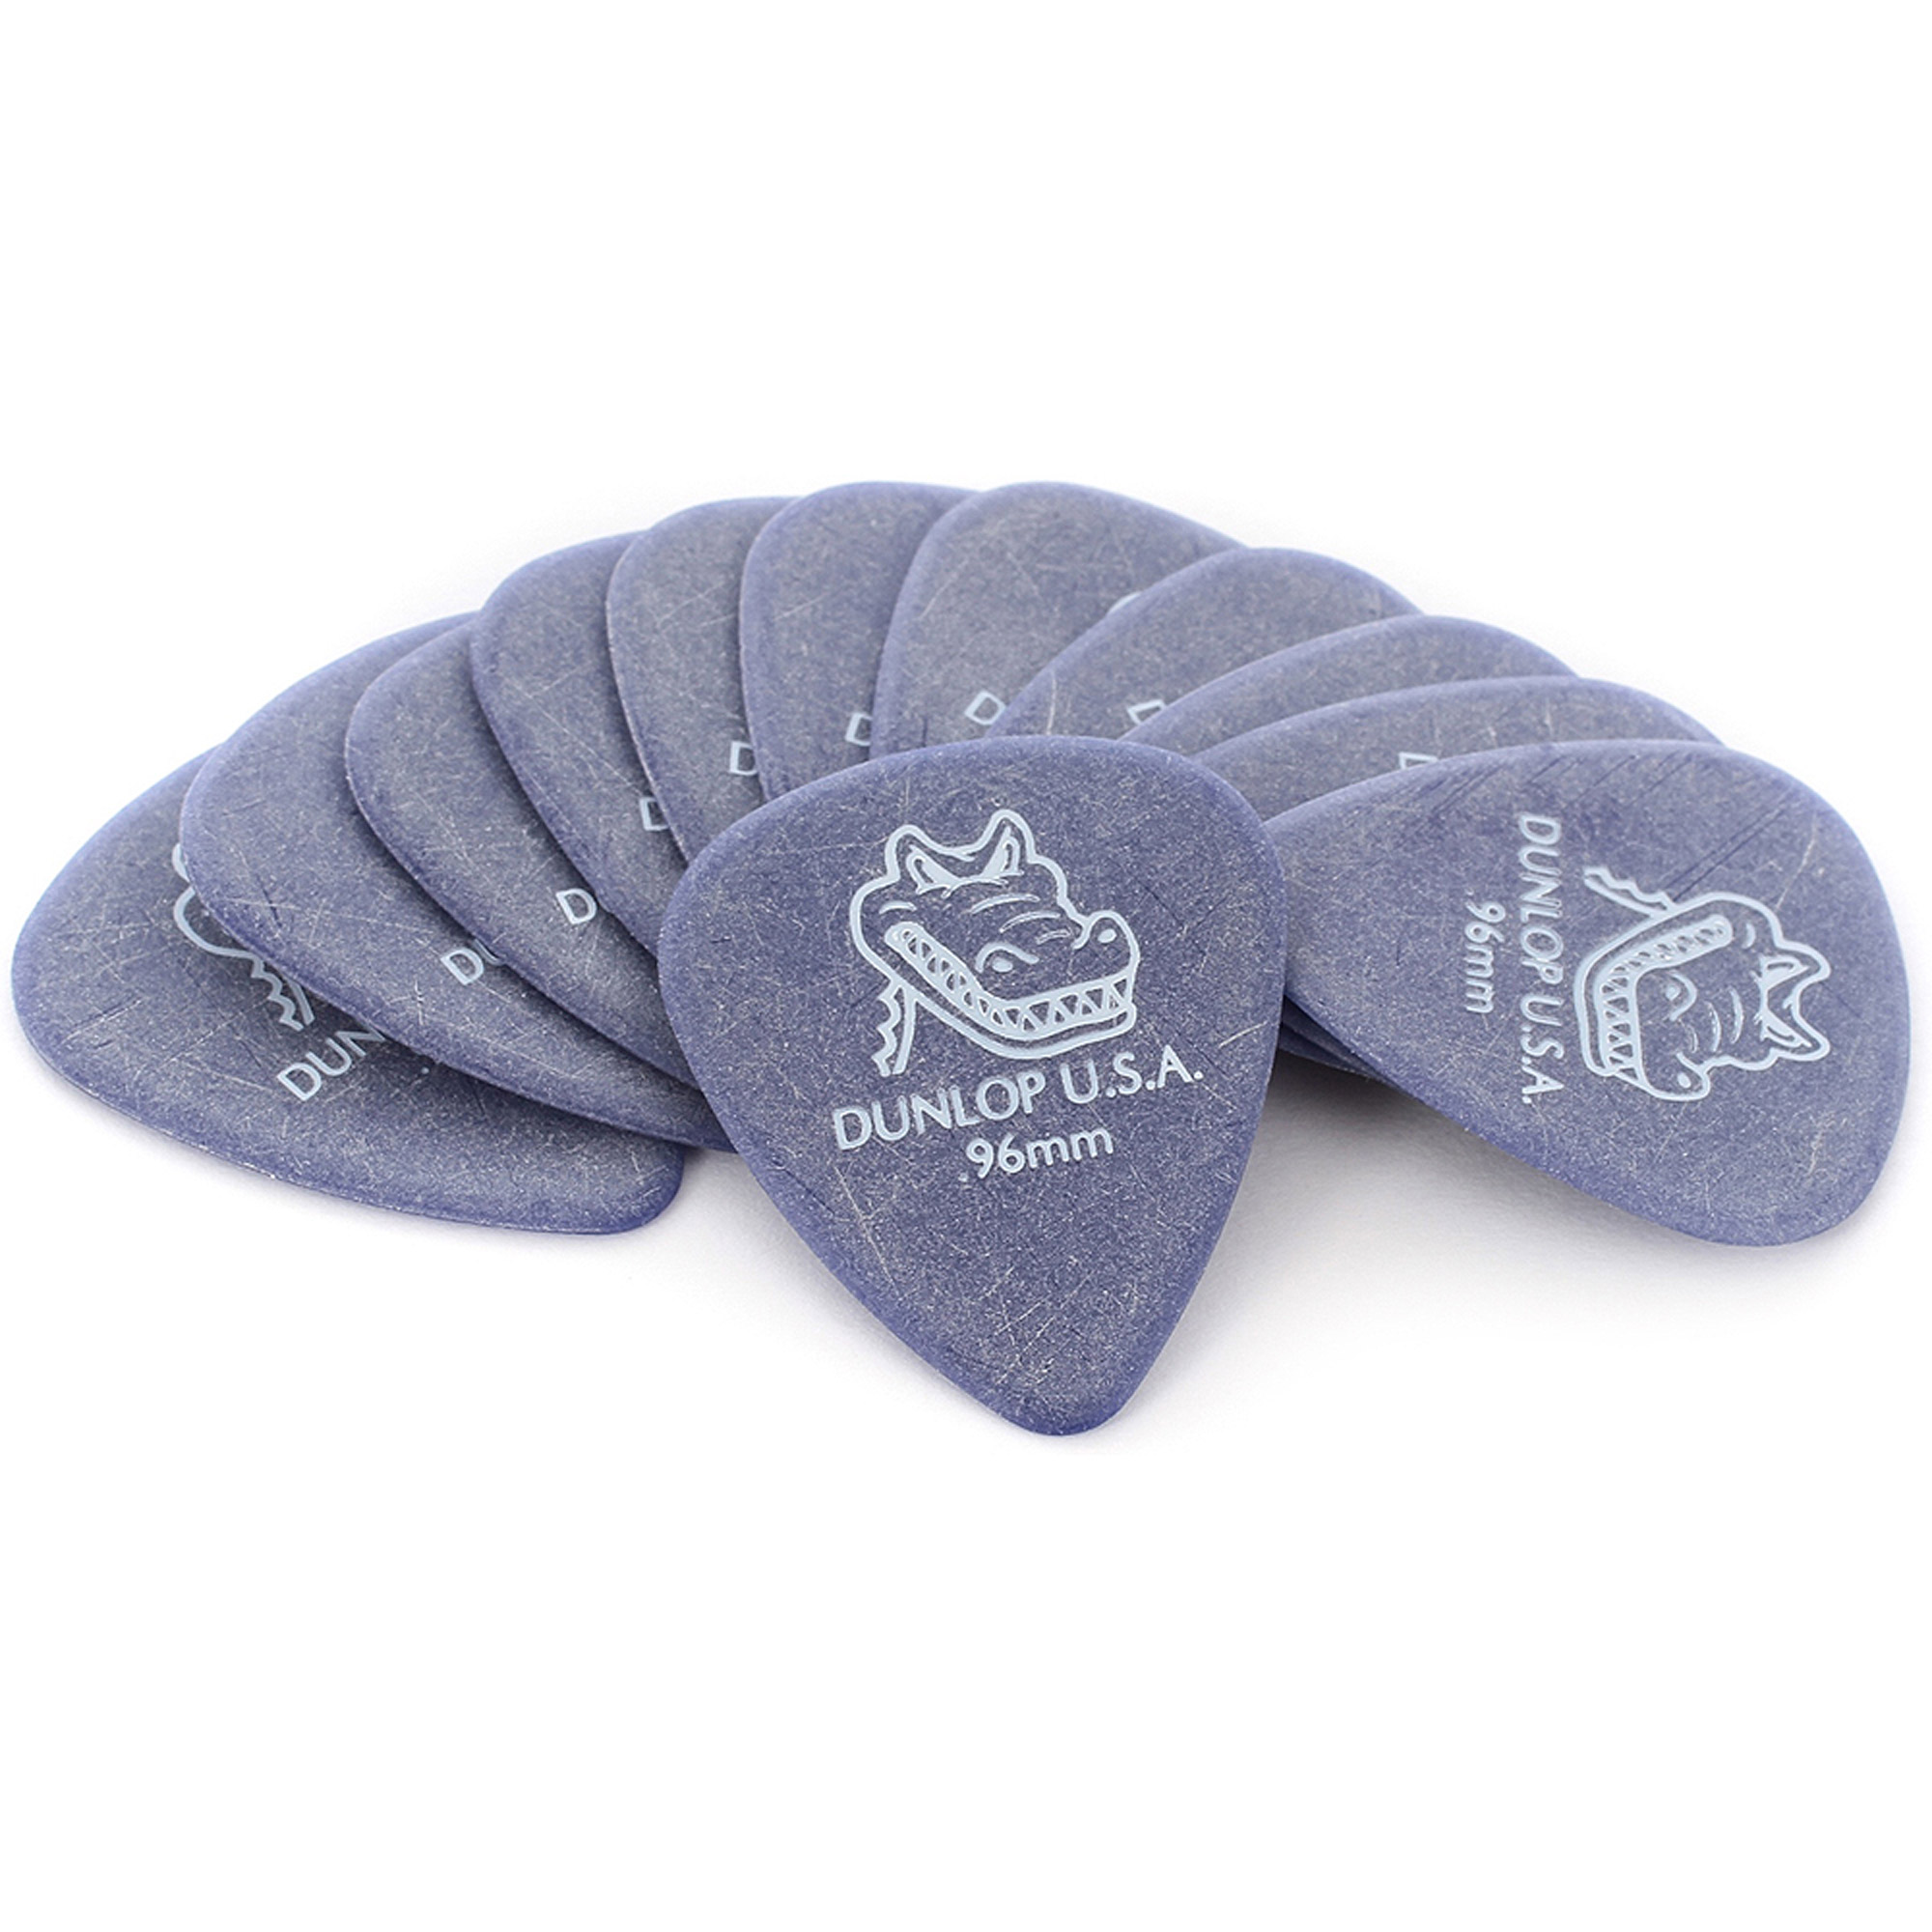 Dunlop Gator Grip Standard Guitar Picks 12-Pack .96mm by Dunlop